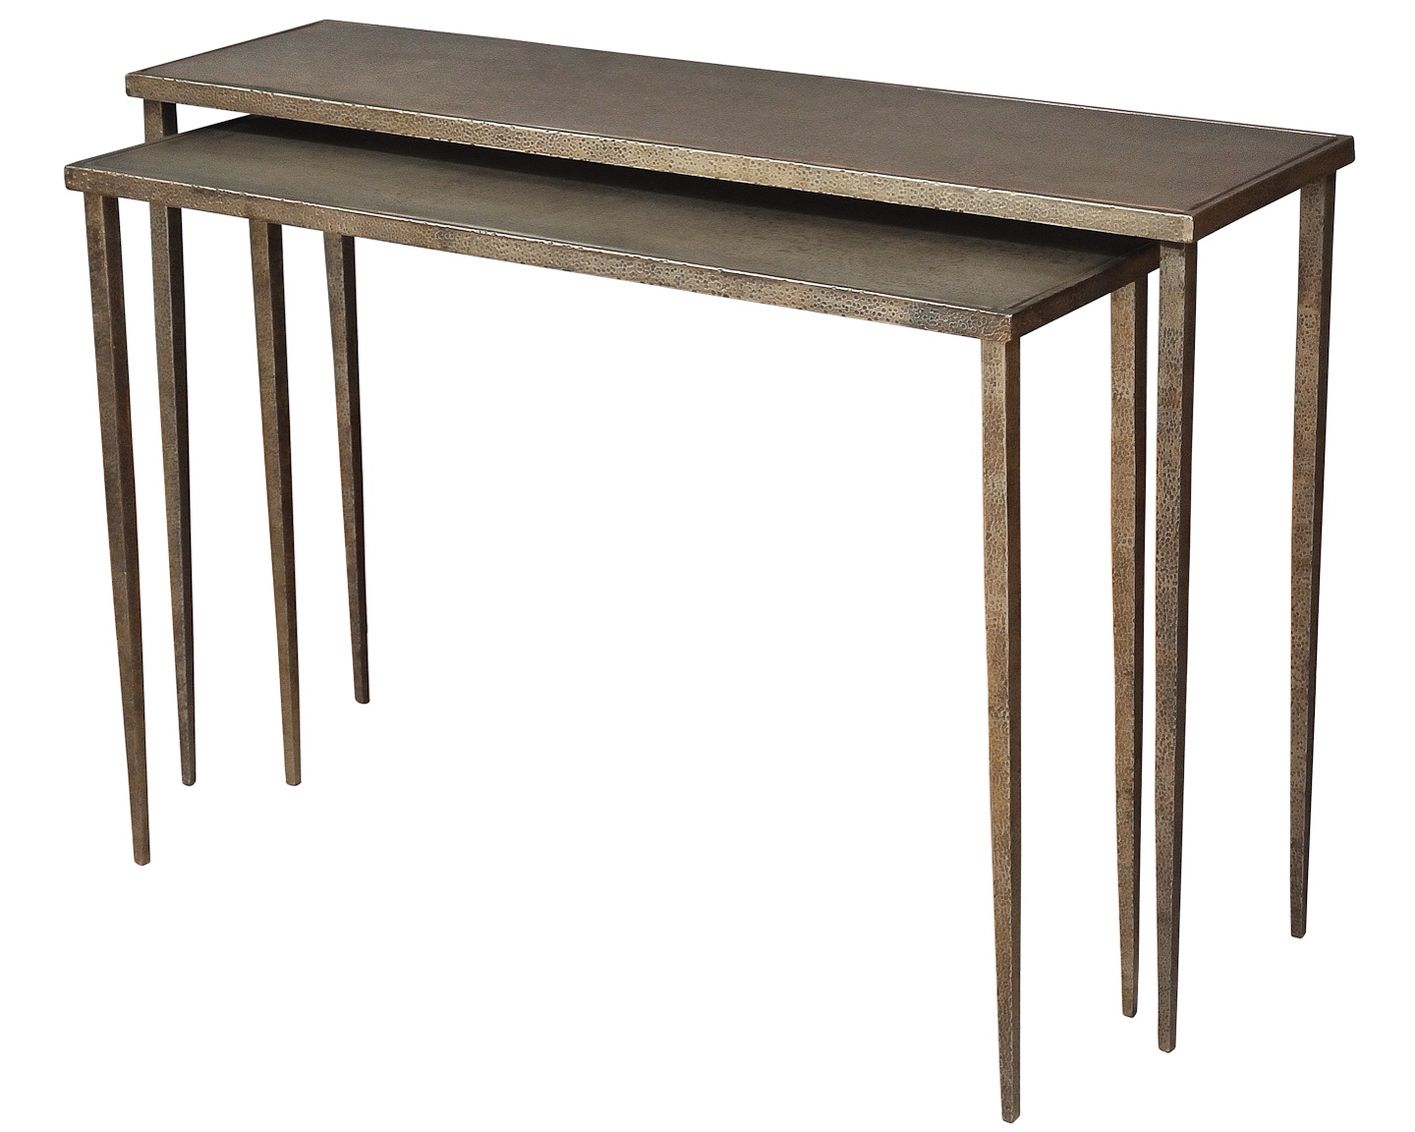 Hammered Sheet Metal Console Tables | My Designs | Pinterest Pertaining To Parsons Concrete Top & Elm Base 48x16 Console Tables (View 6 of 30)